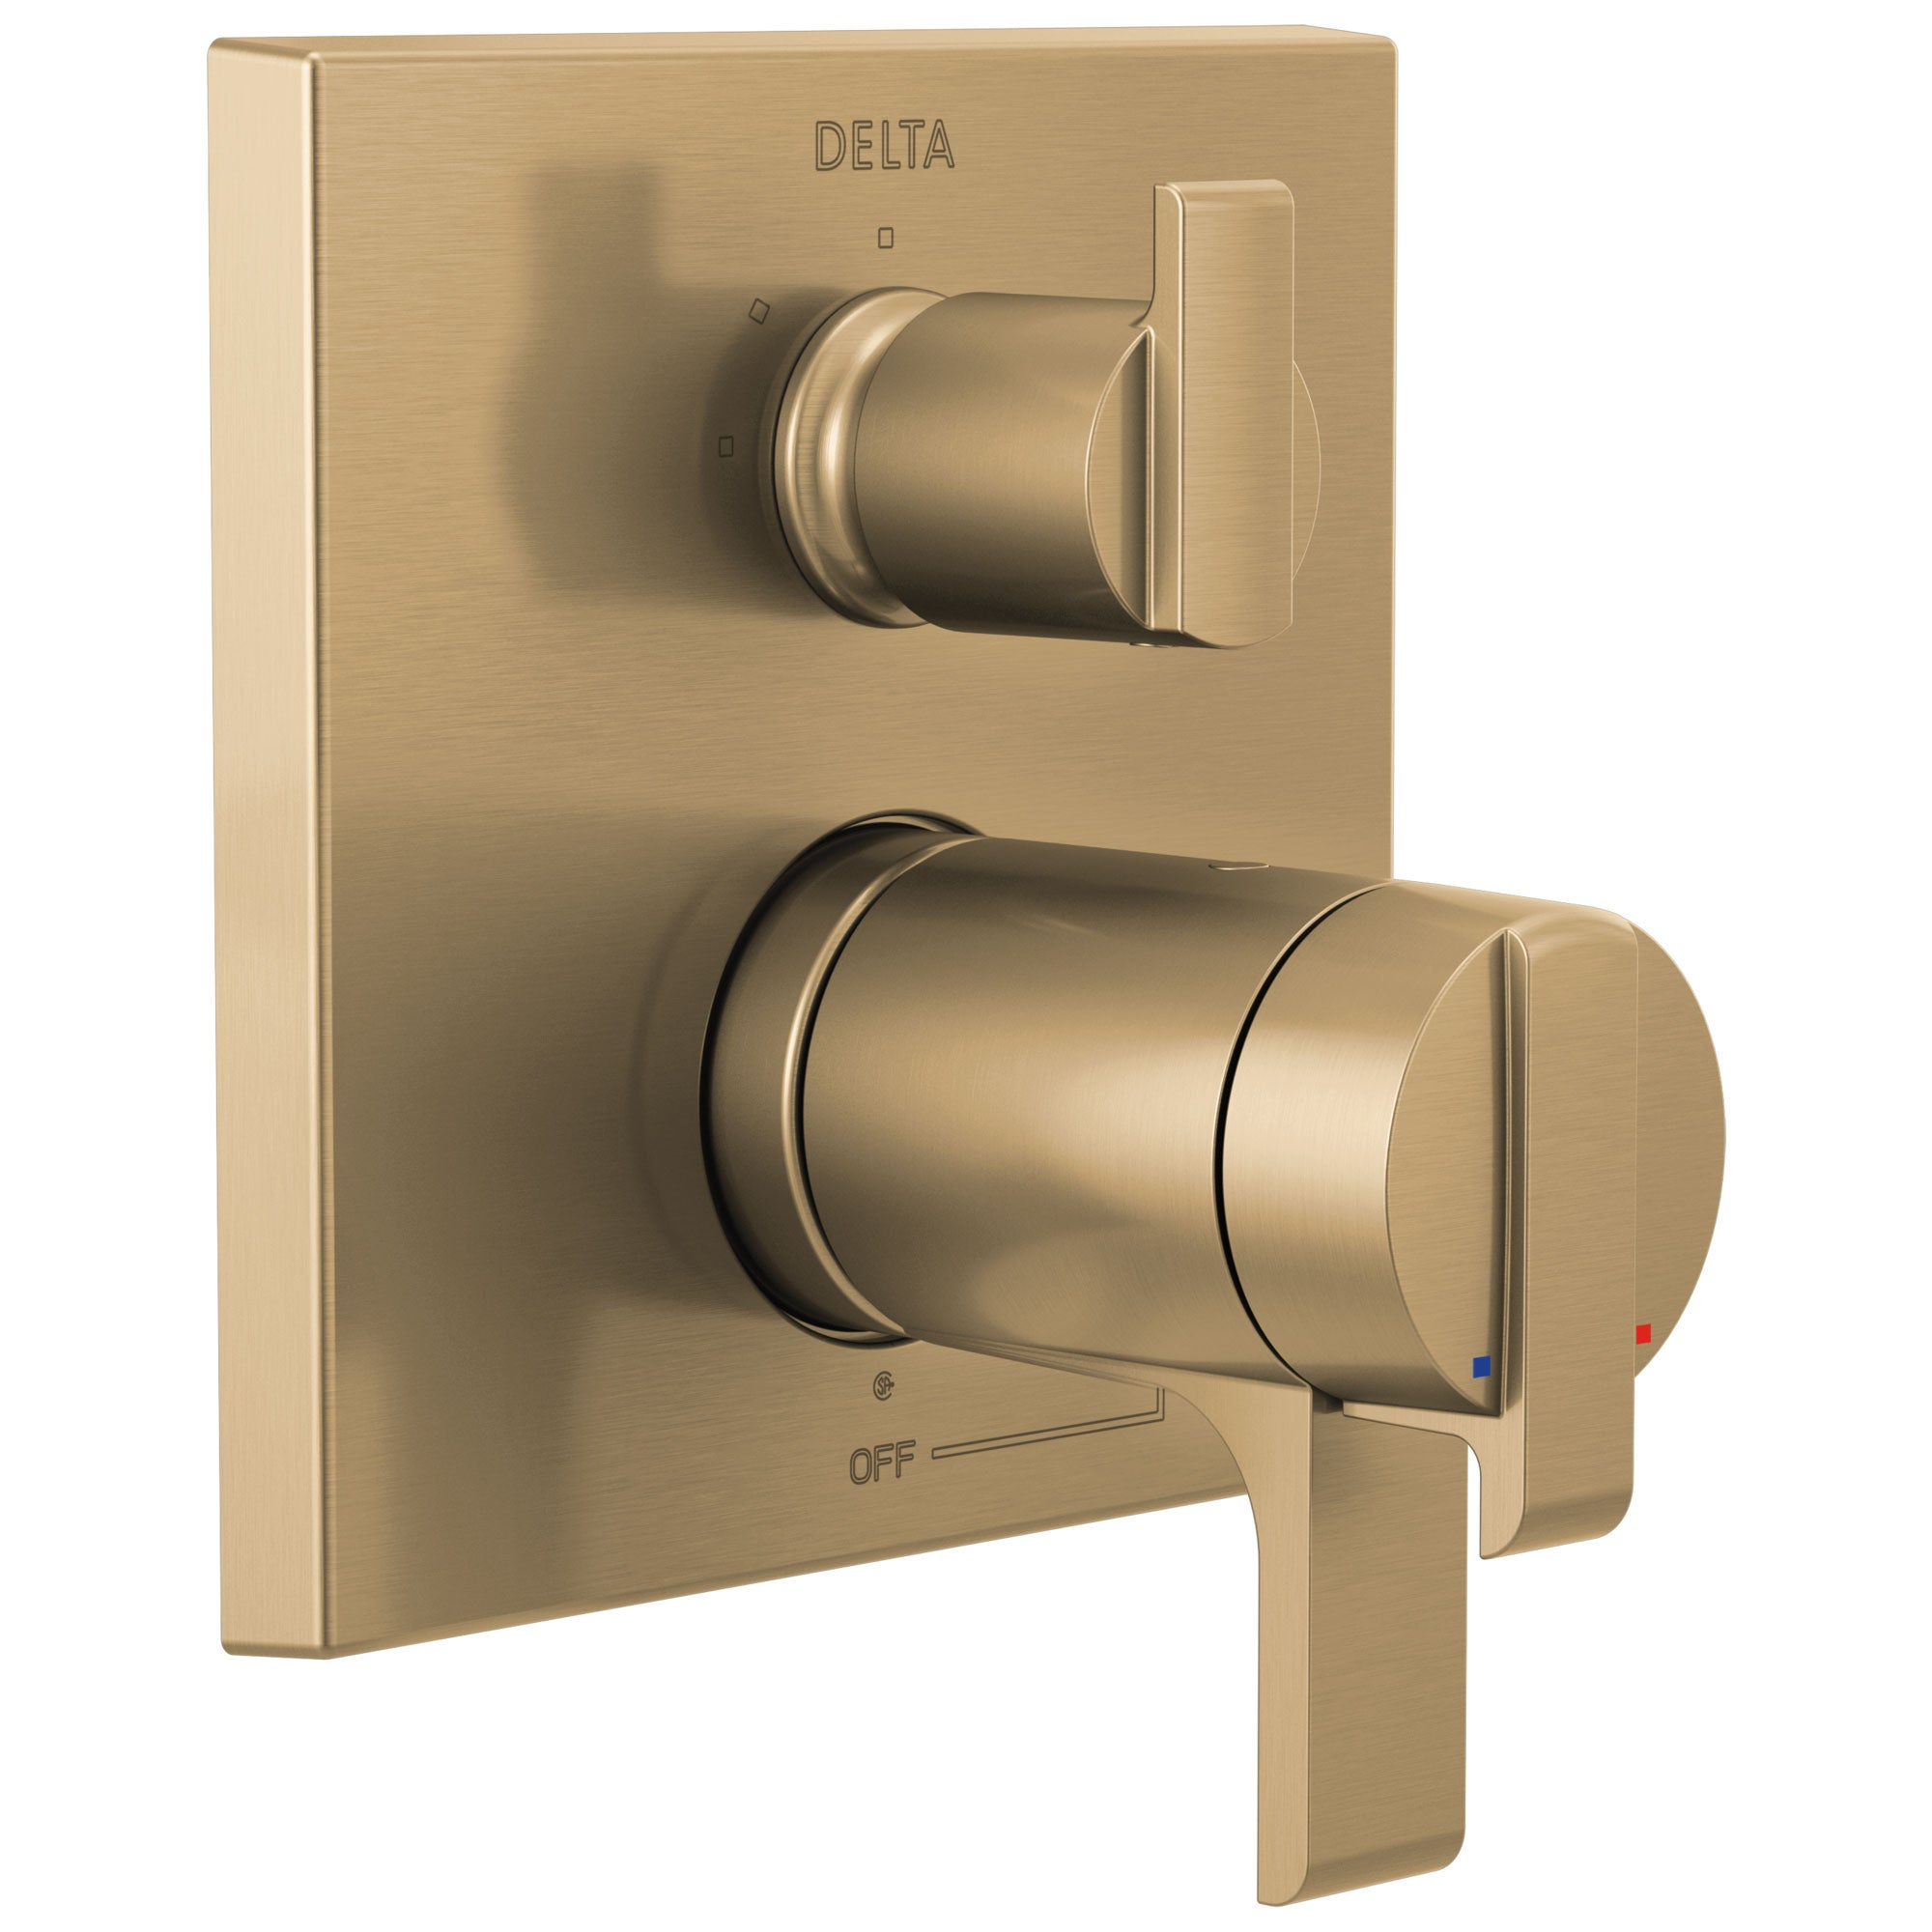 Delta Ara Champagne Bronze Finish Angular Modern TempAssure 17T Series Shower Control Trim Kit with 3-Setting Integrated Diverter (Requires Valve) DT27T867CZ